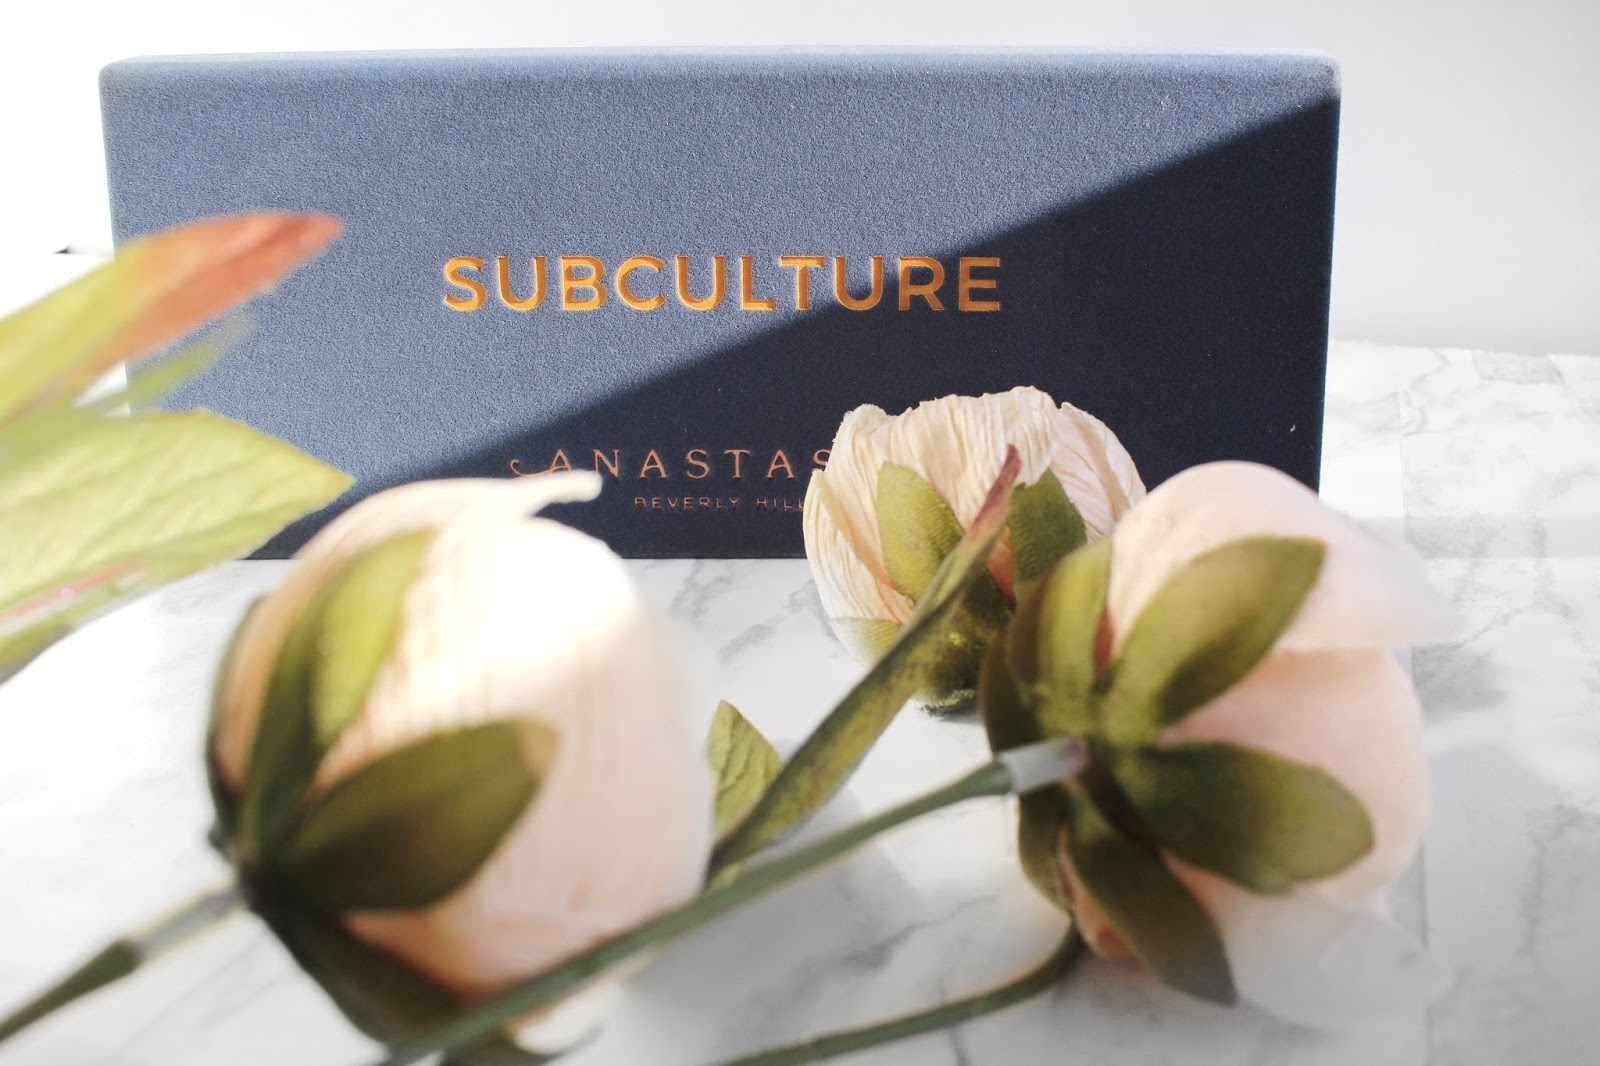 The Controversial Palette   Anastasia Beverly Hills' Subculture Palette First Impressions and Swatches    The Glam Surge